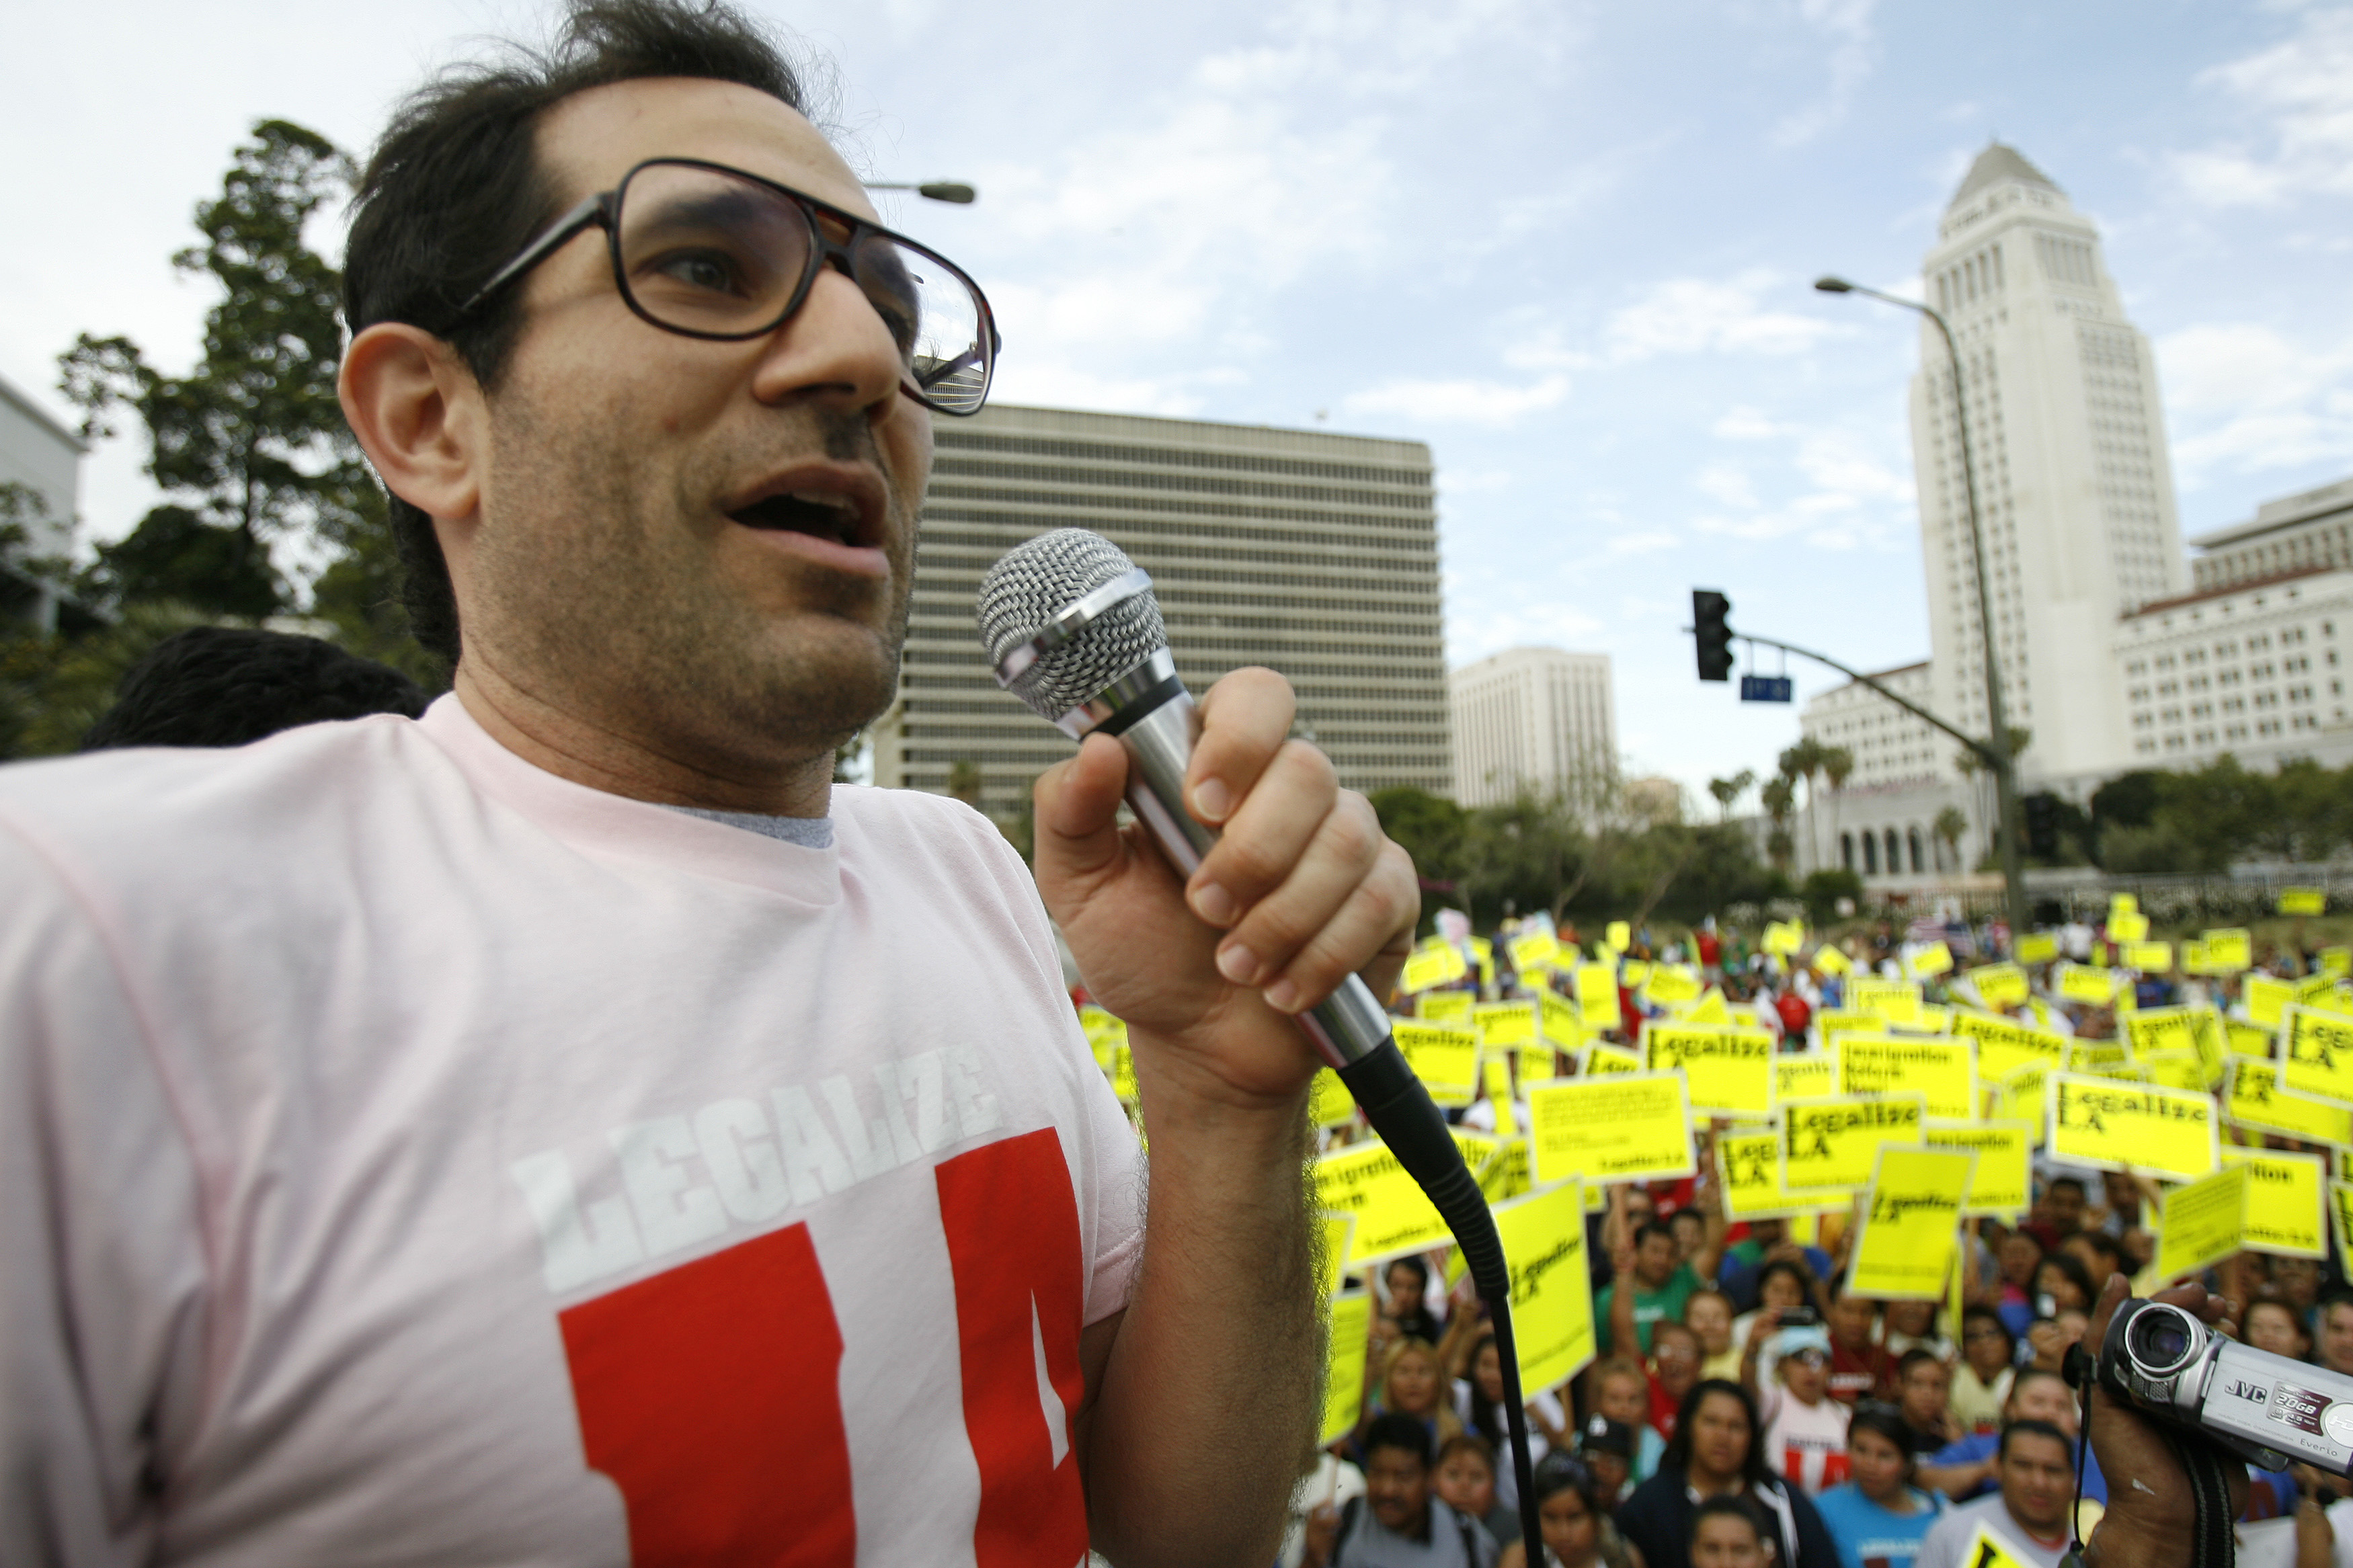 American Apparel owner Dov Charney speaks during a May Day rally march for immigrant rights in downtown Los Angeles on May 1, 2009